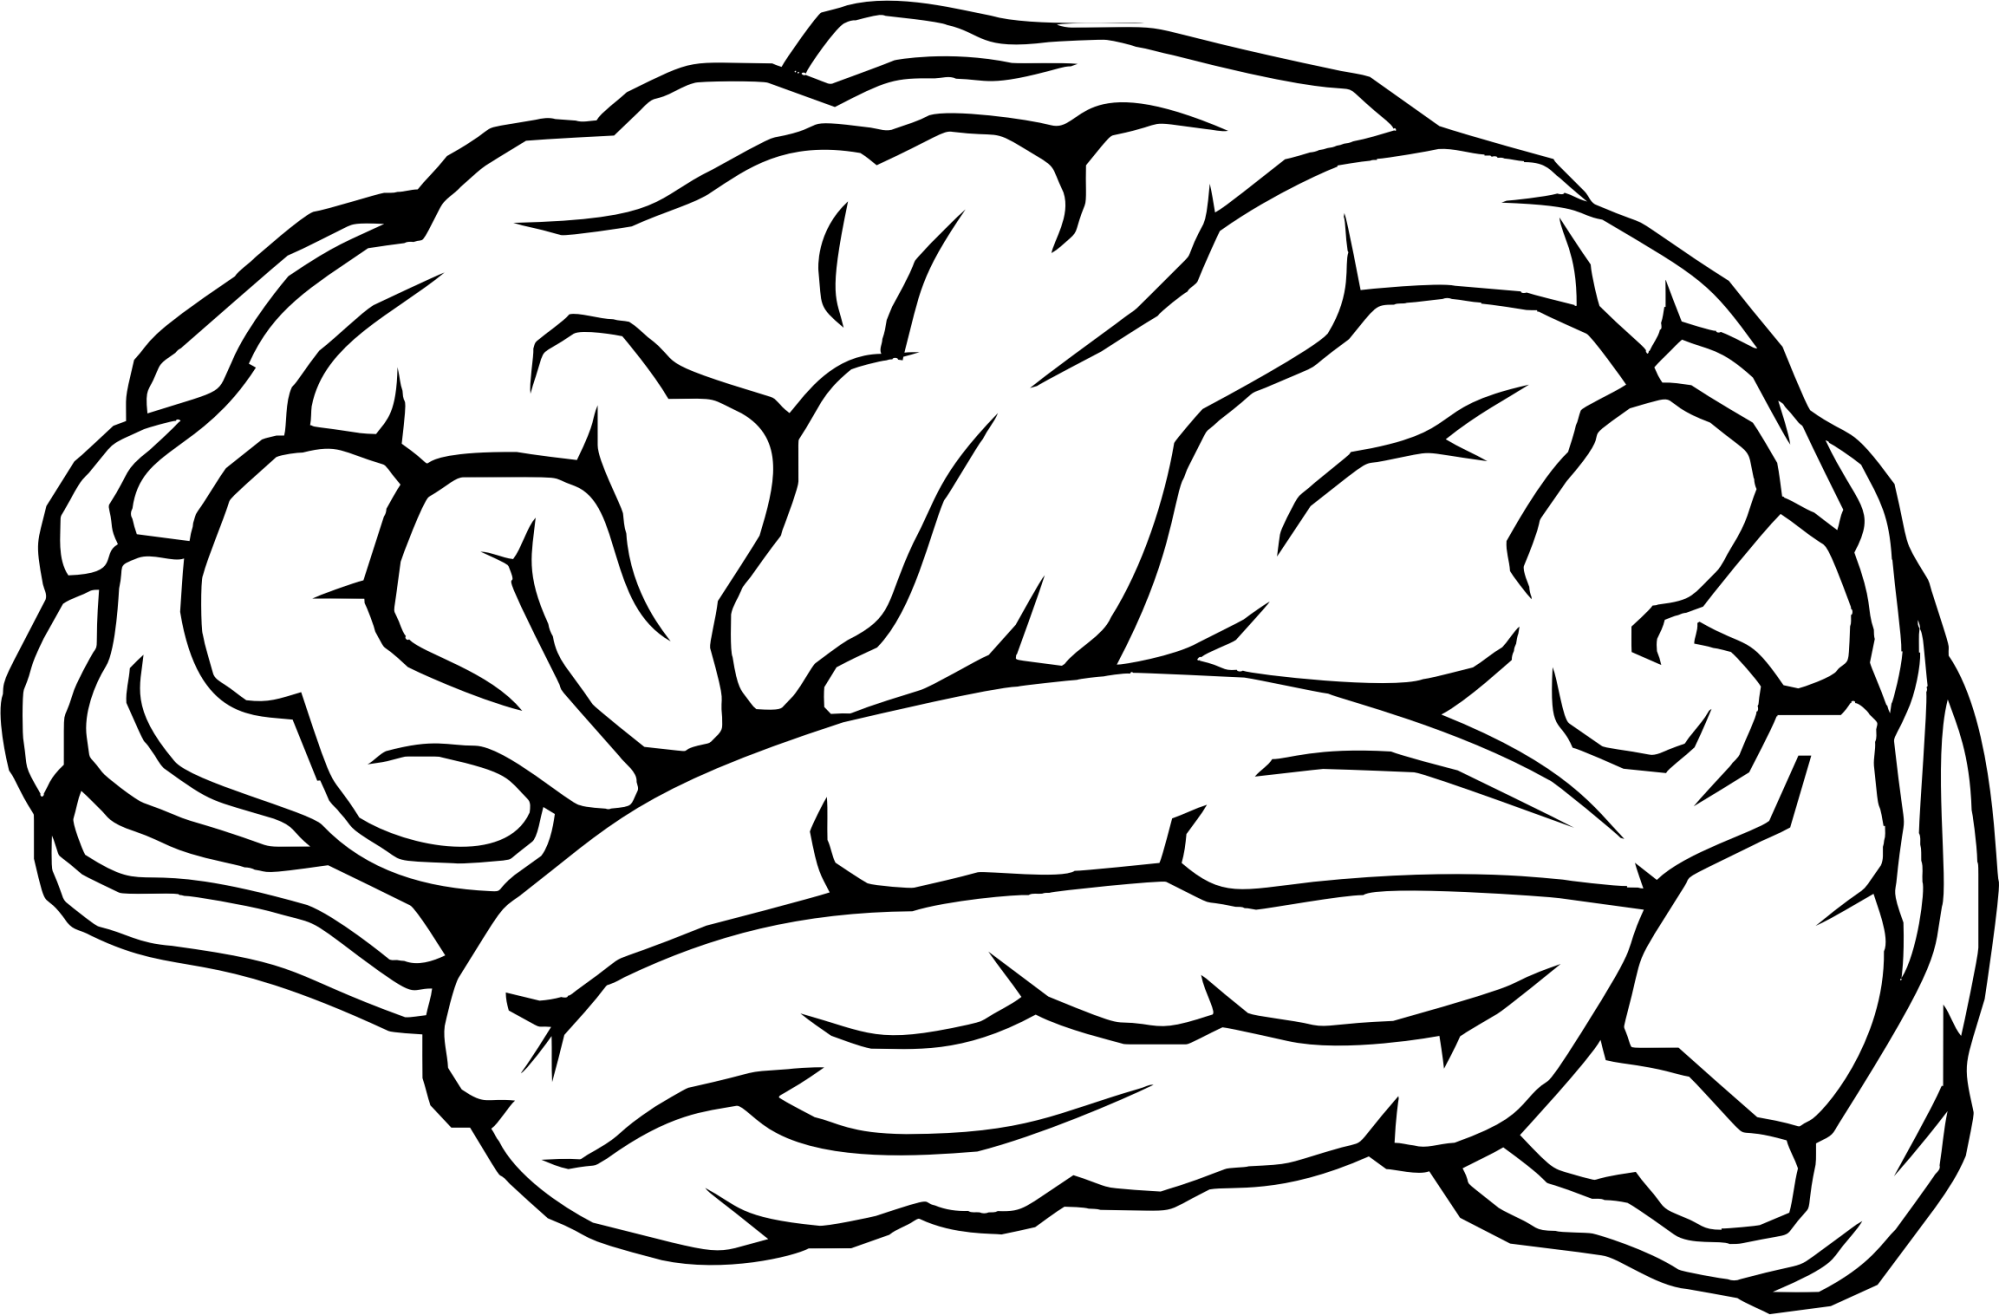 hight resolution of 2306x1517 clip art brain clipart collection